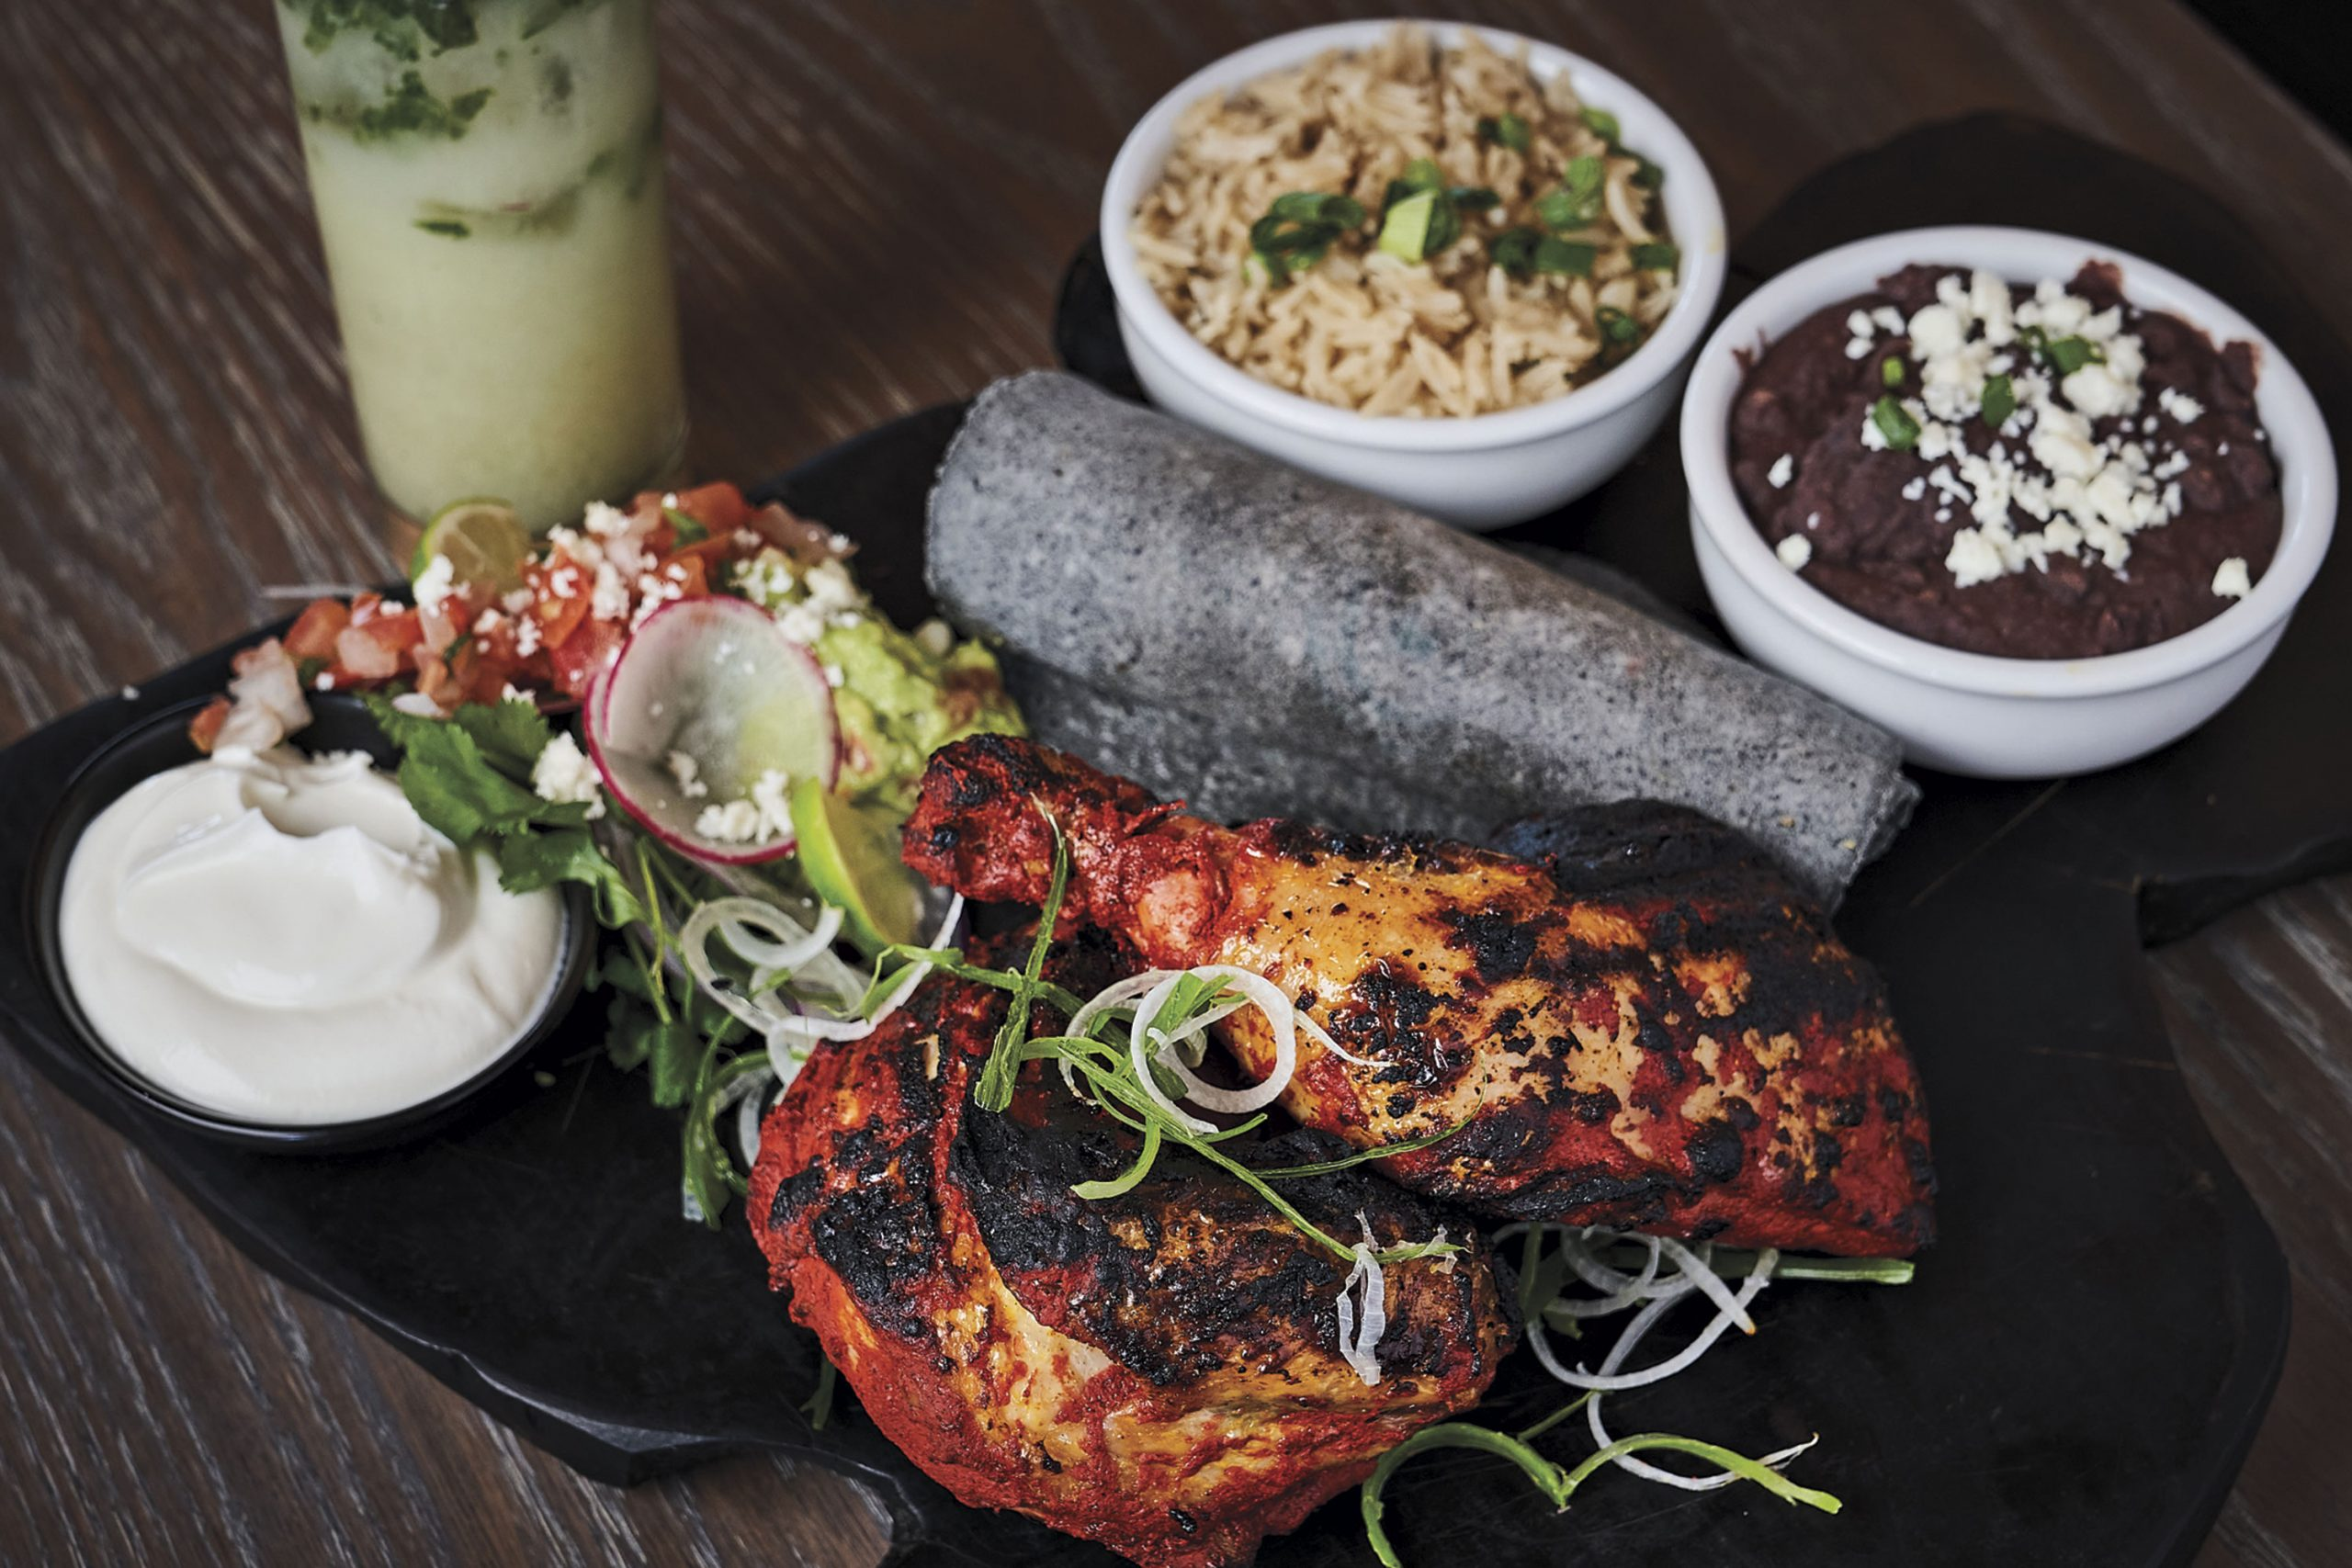 mesquite grilled achiote chicken; Photo by Kyle Ledeboer